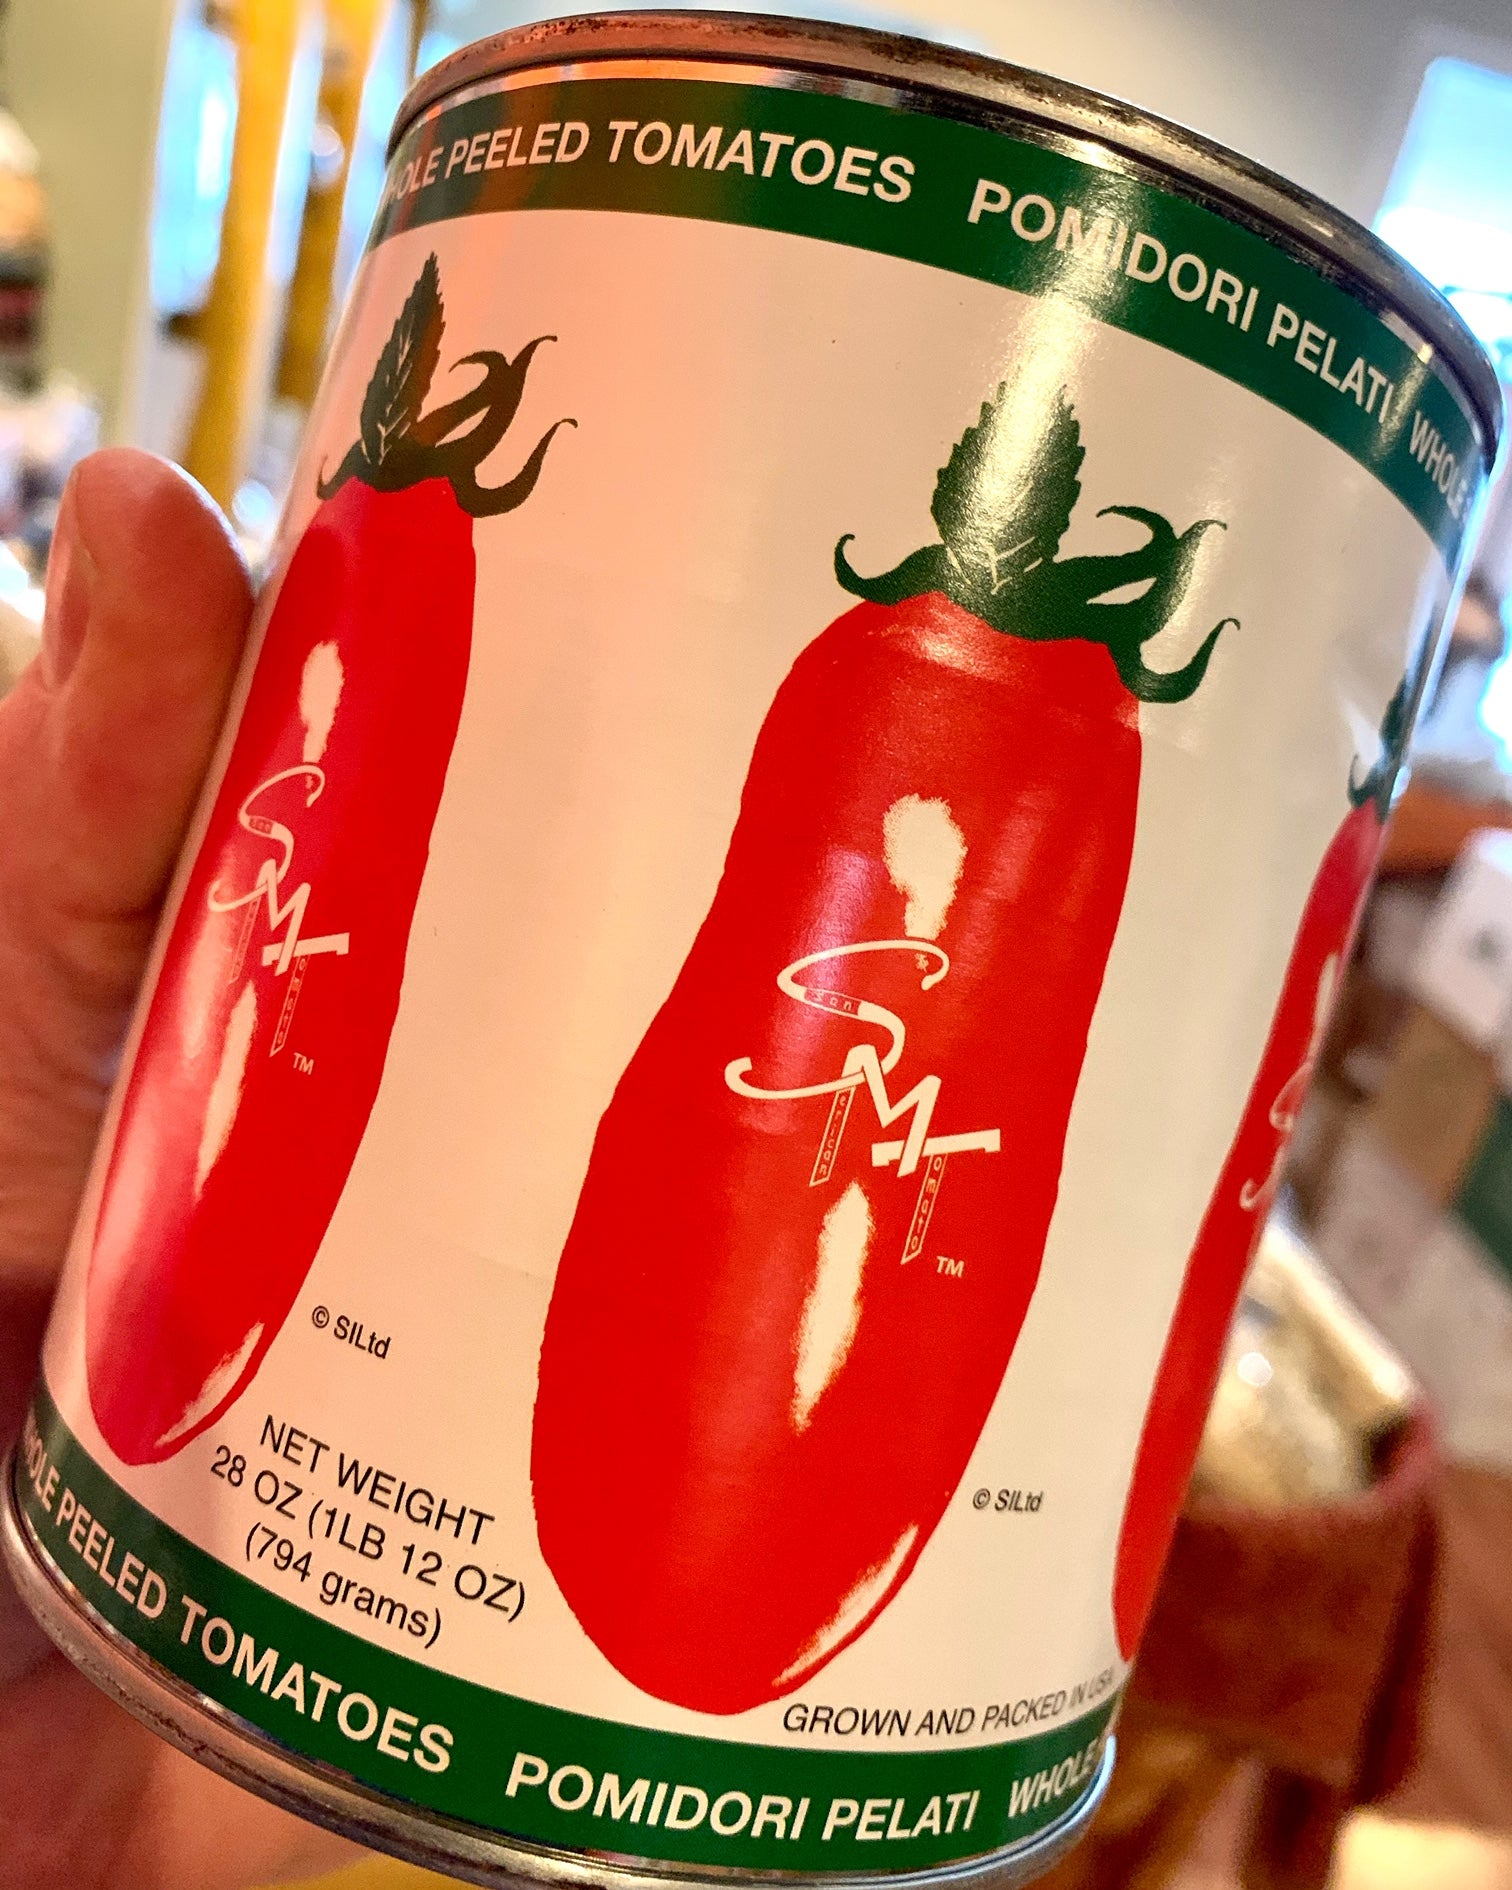 A Can of Really Good Tomatoes 28oz